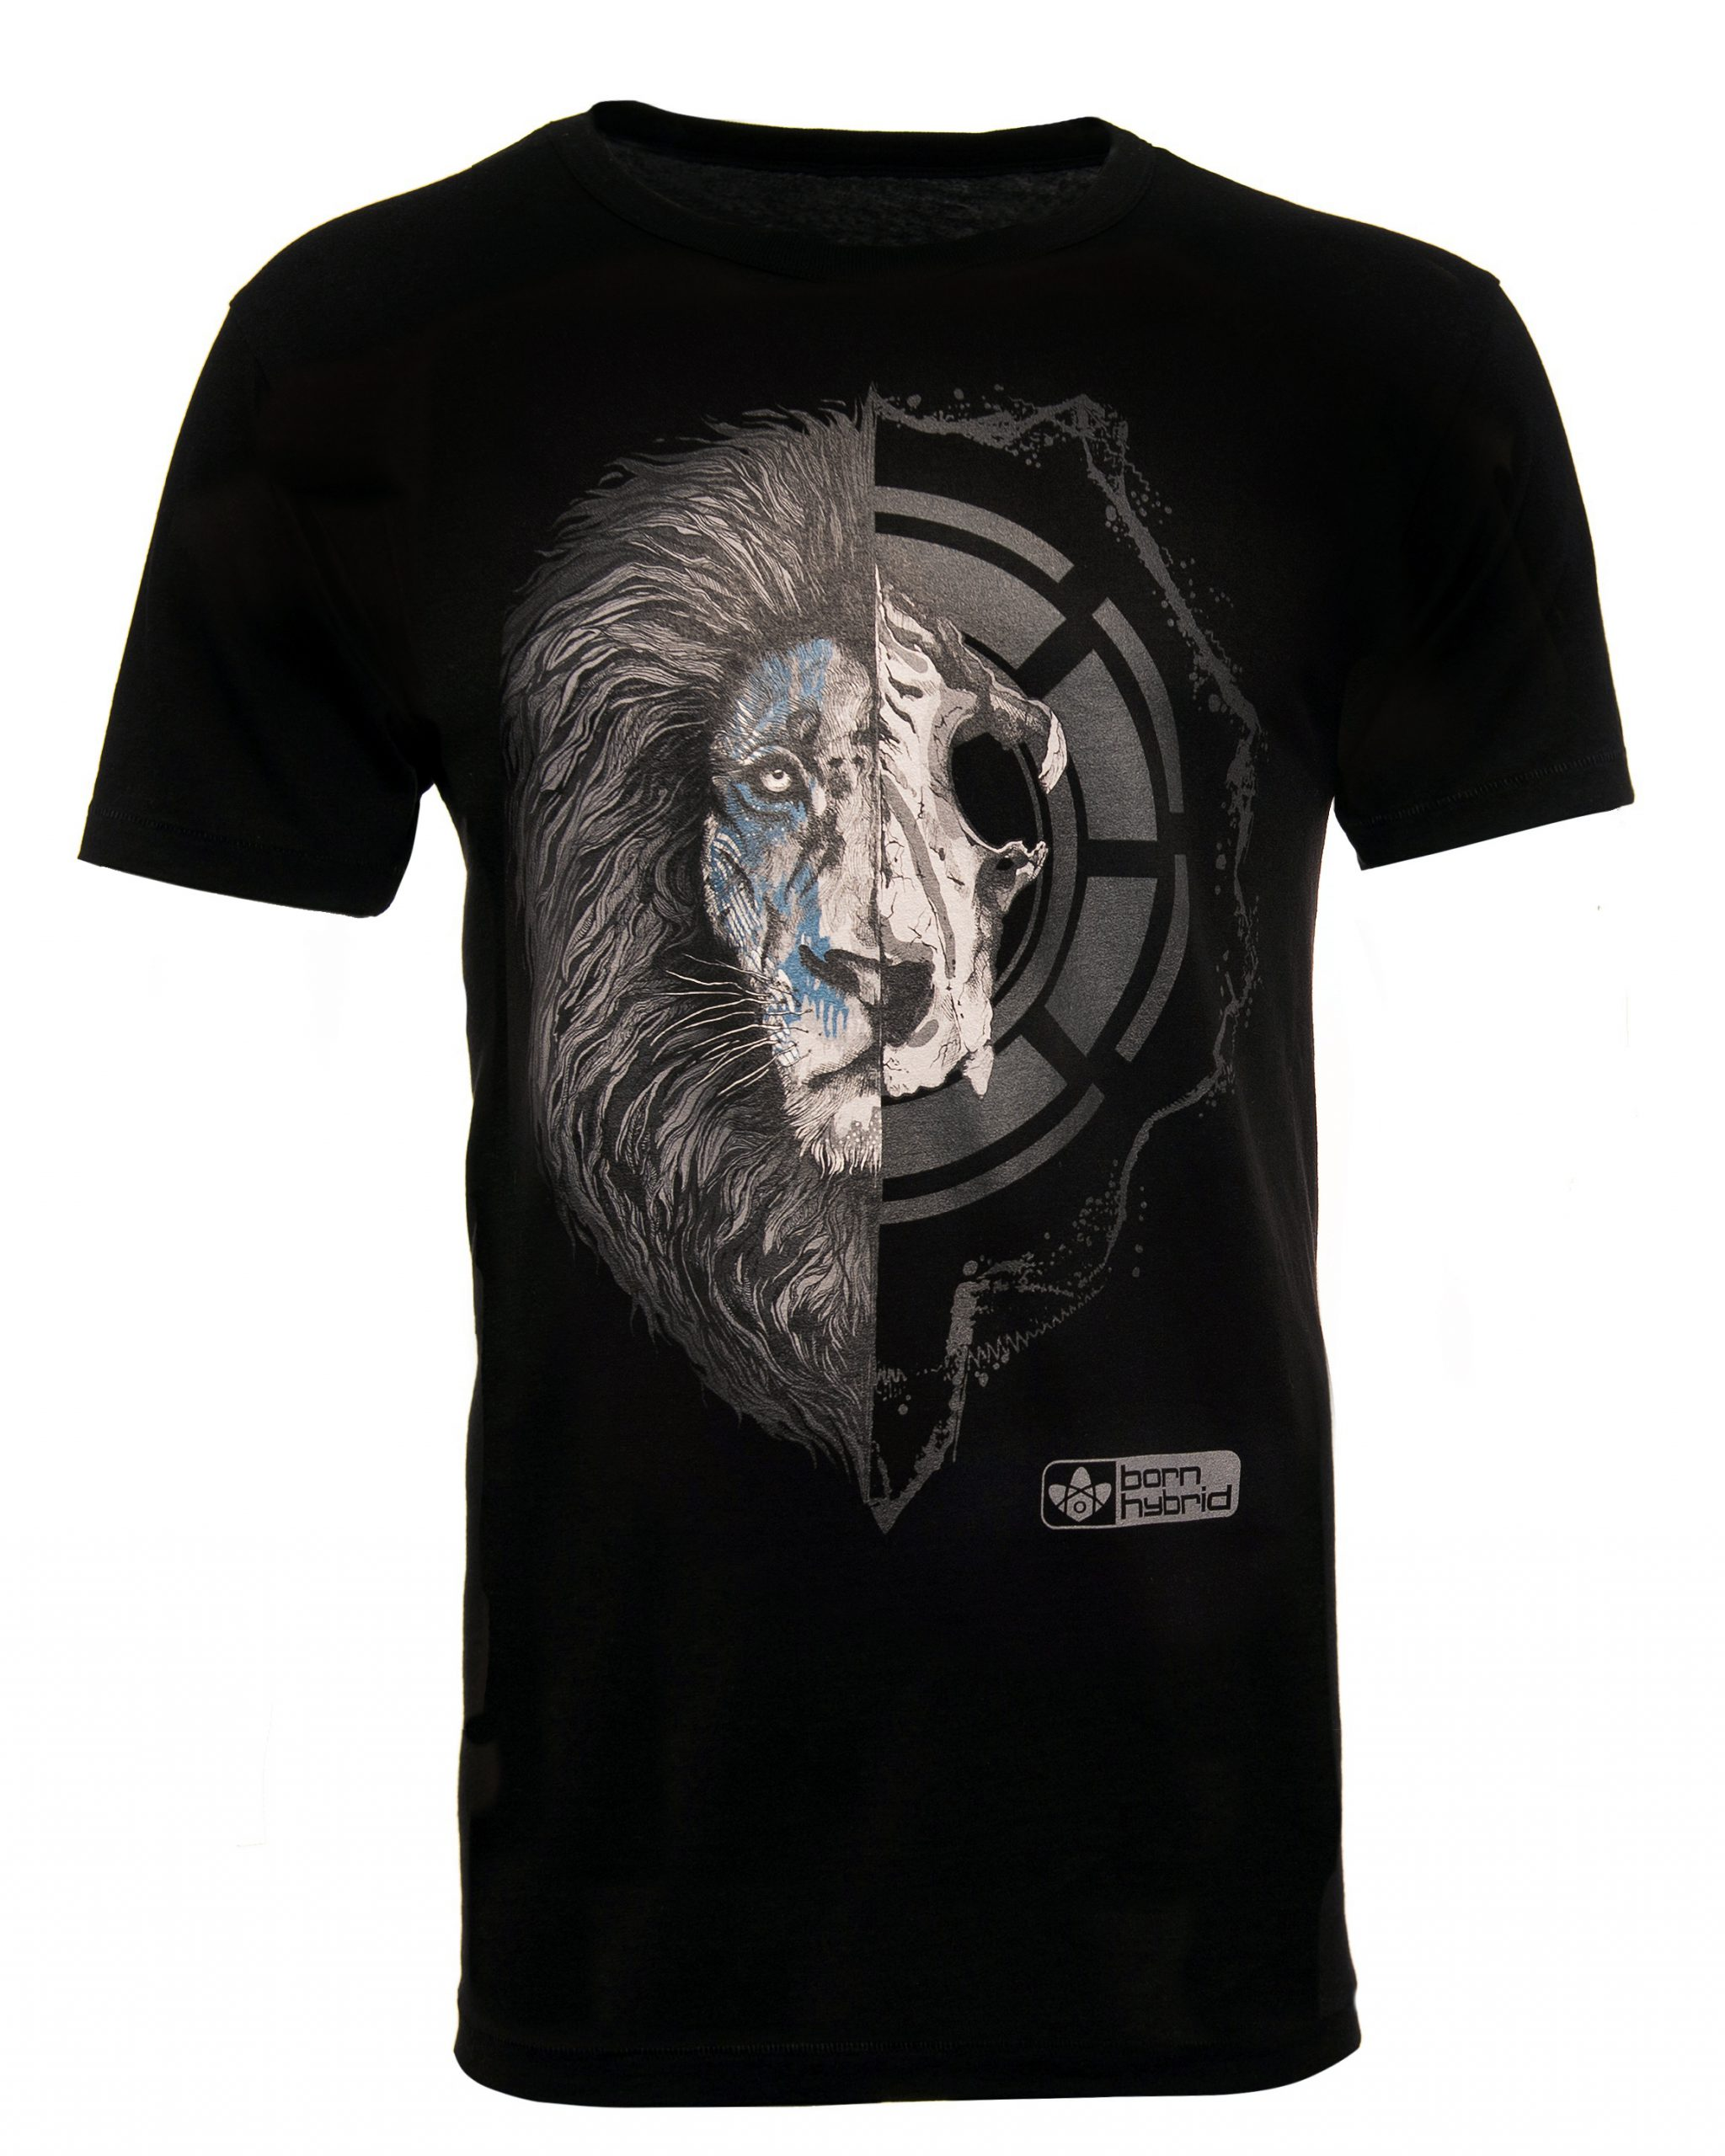 Men's black lion graphic t-shirt - half lion face, half lion skull. Combed organic cotton